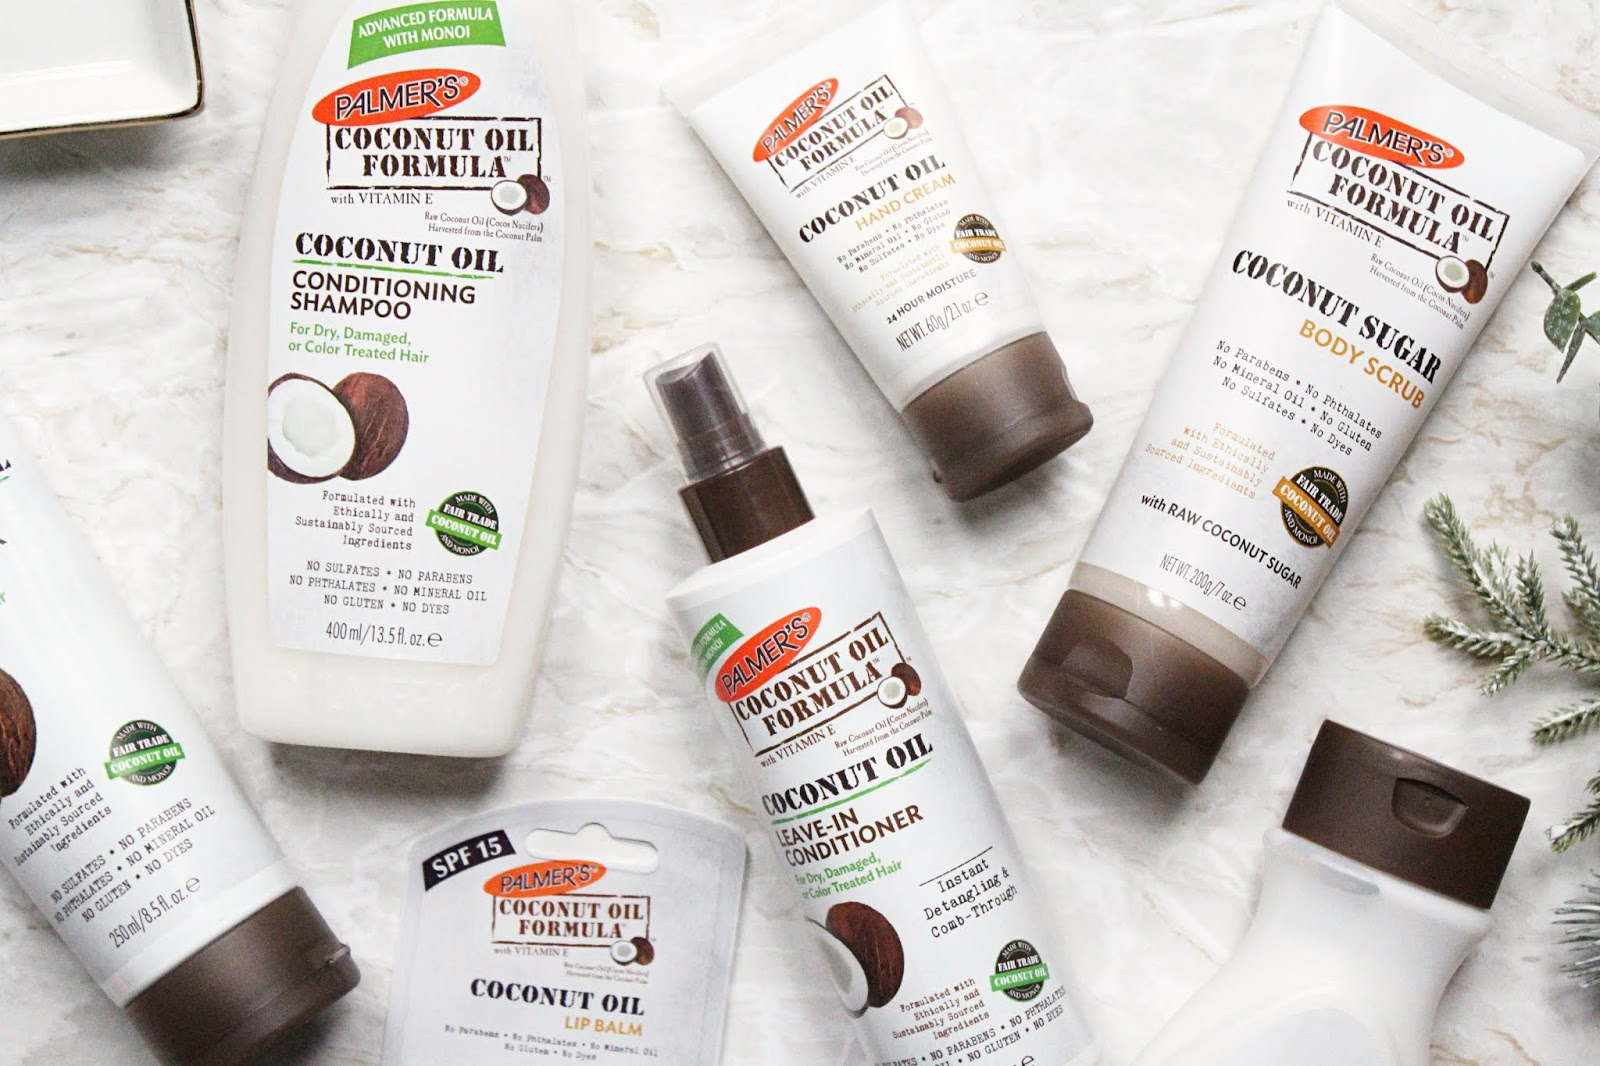 Palmers Coconut Oil Range